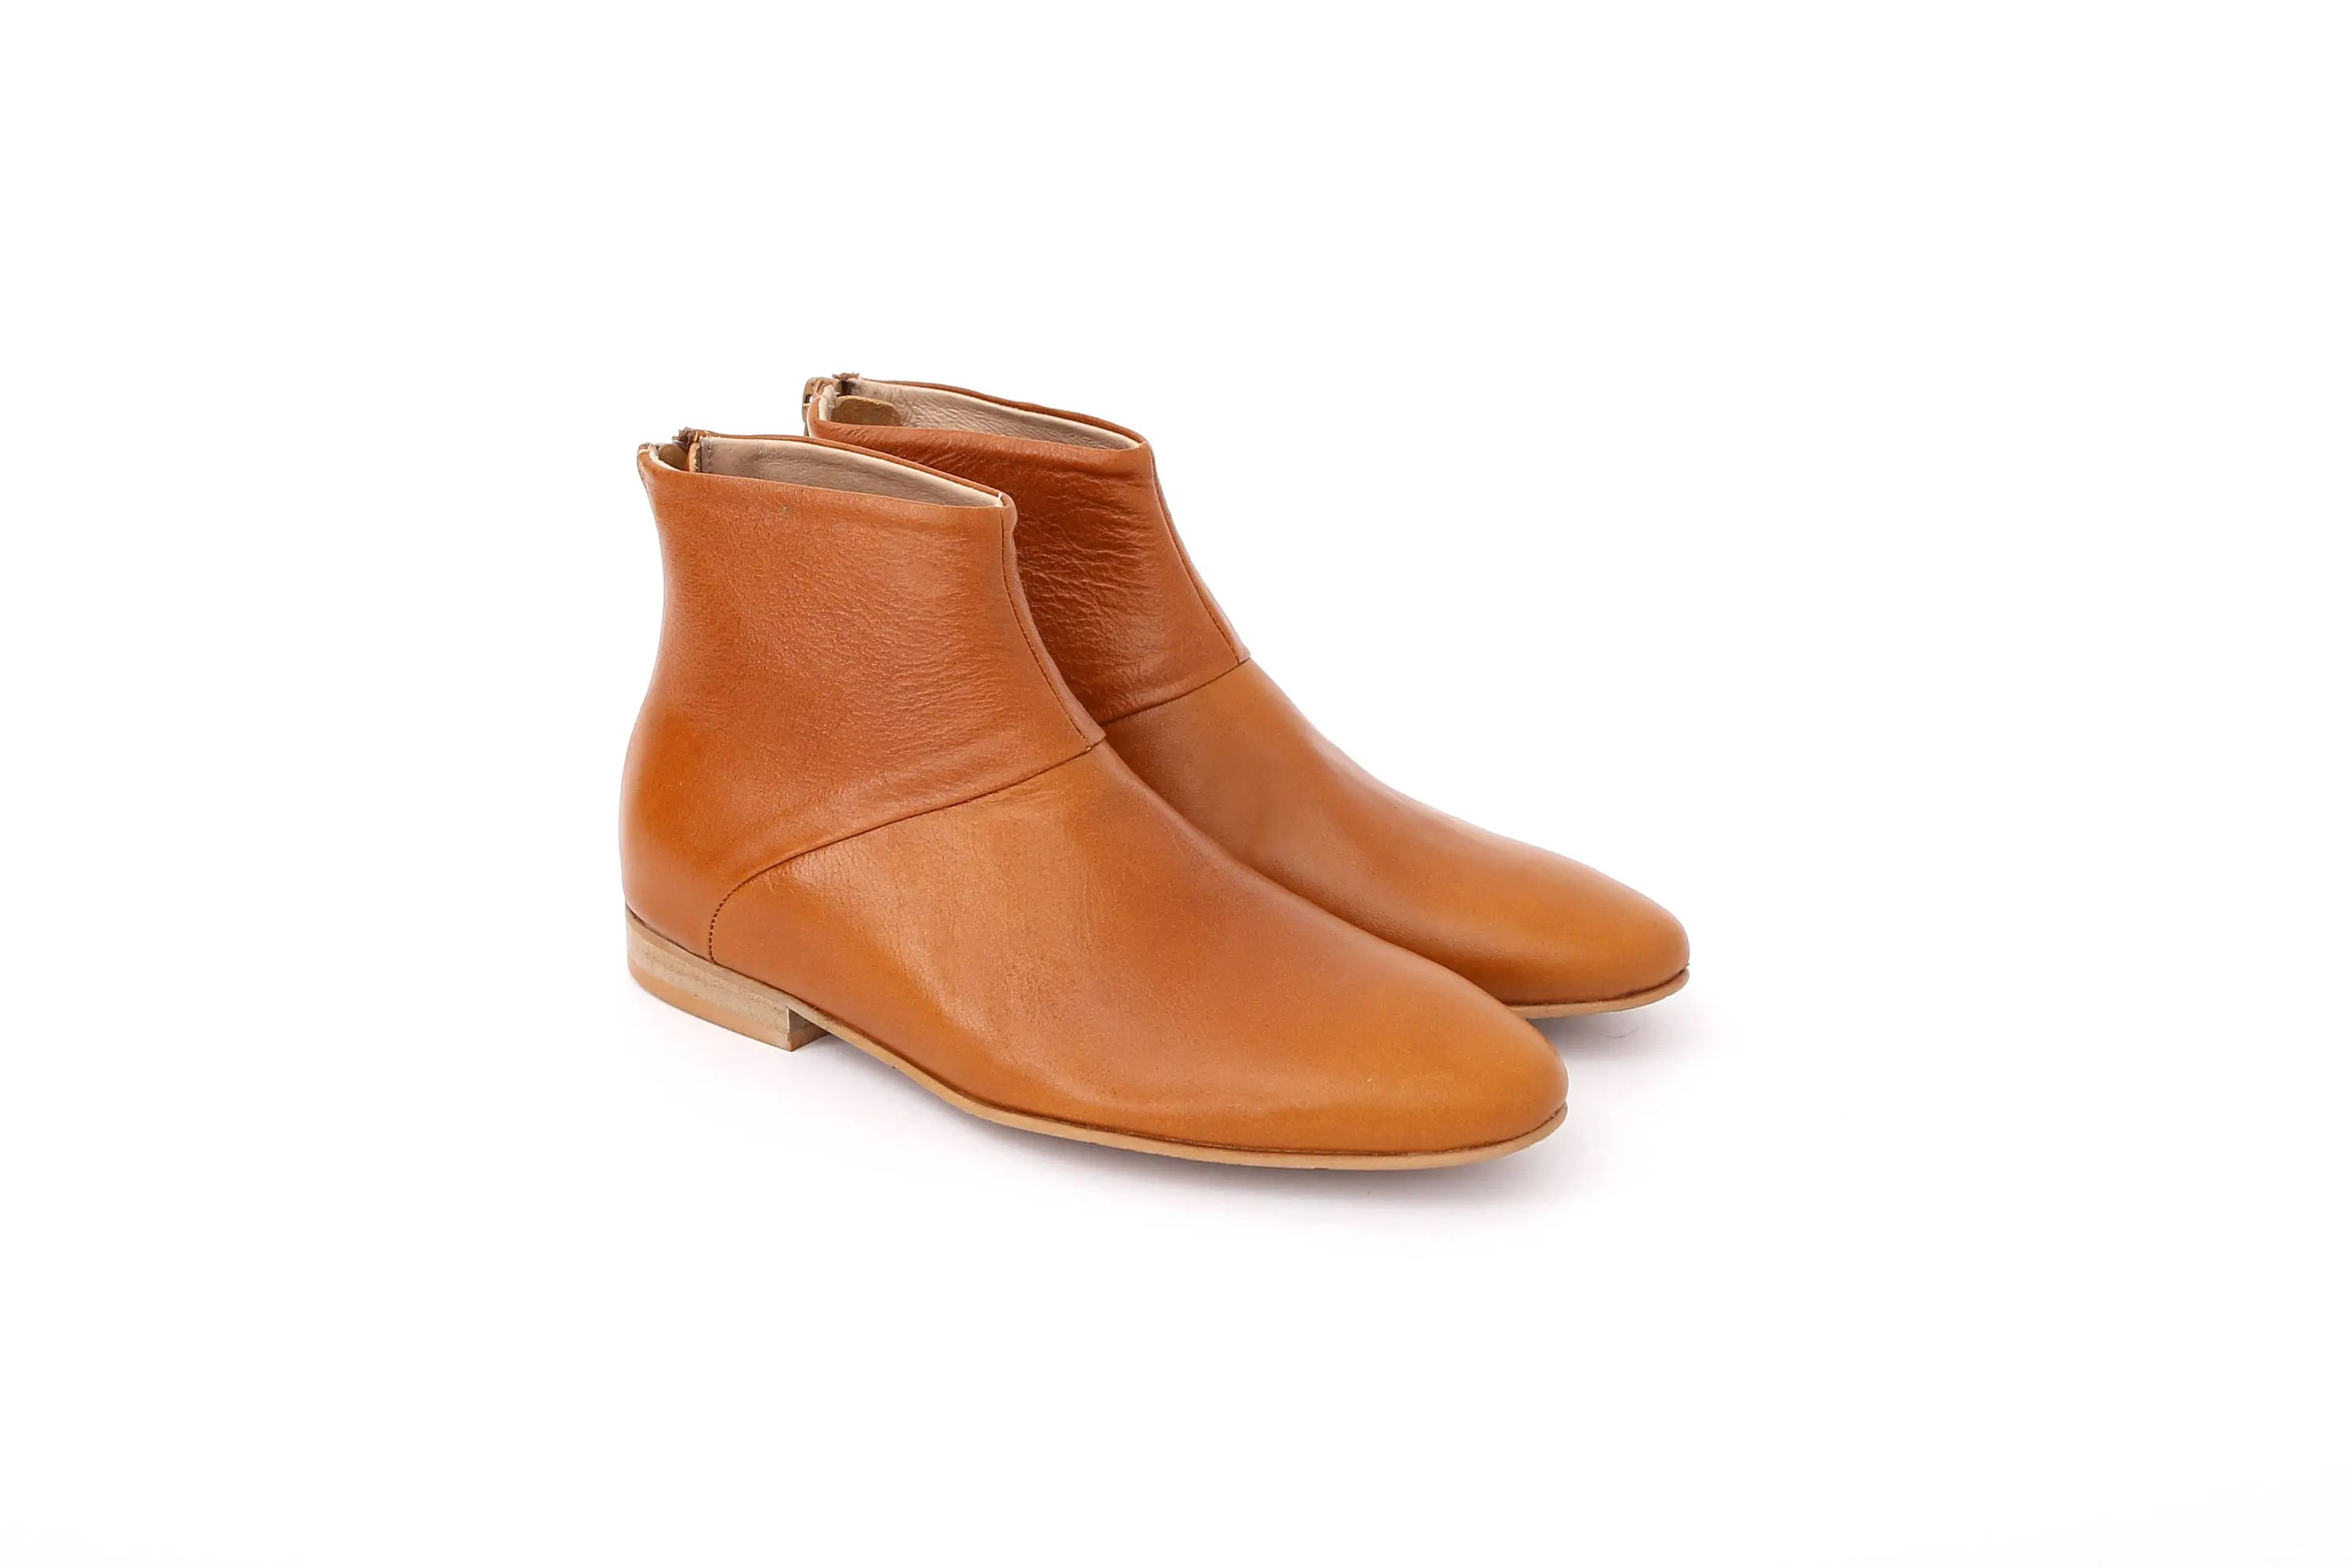 Women39s Boots Flat Ankle Boots Light Brown Camel